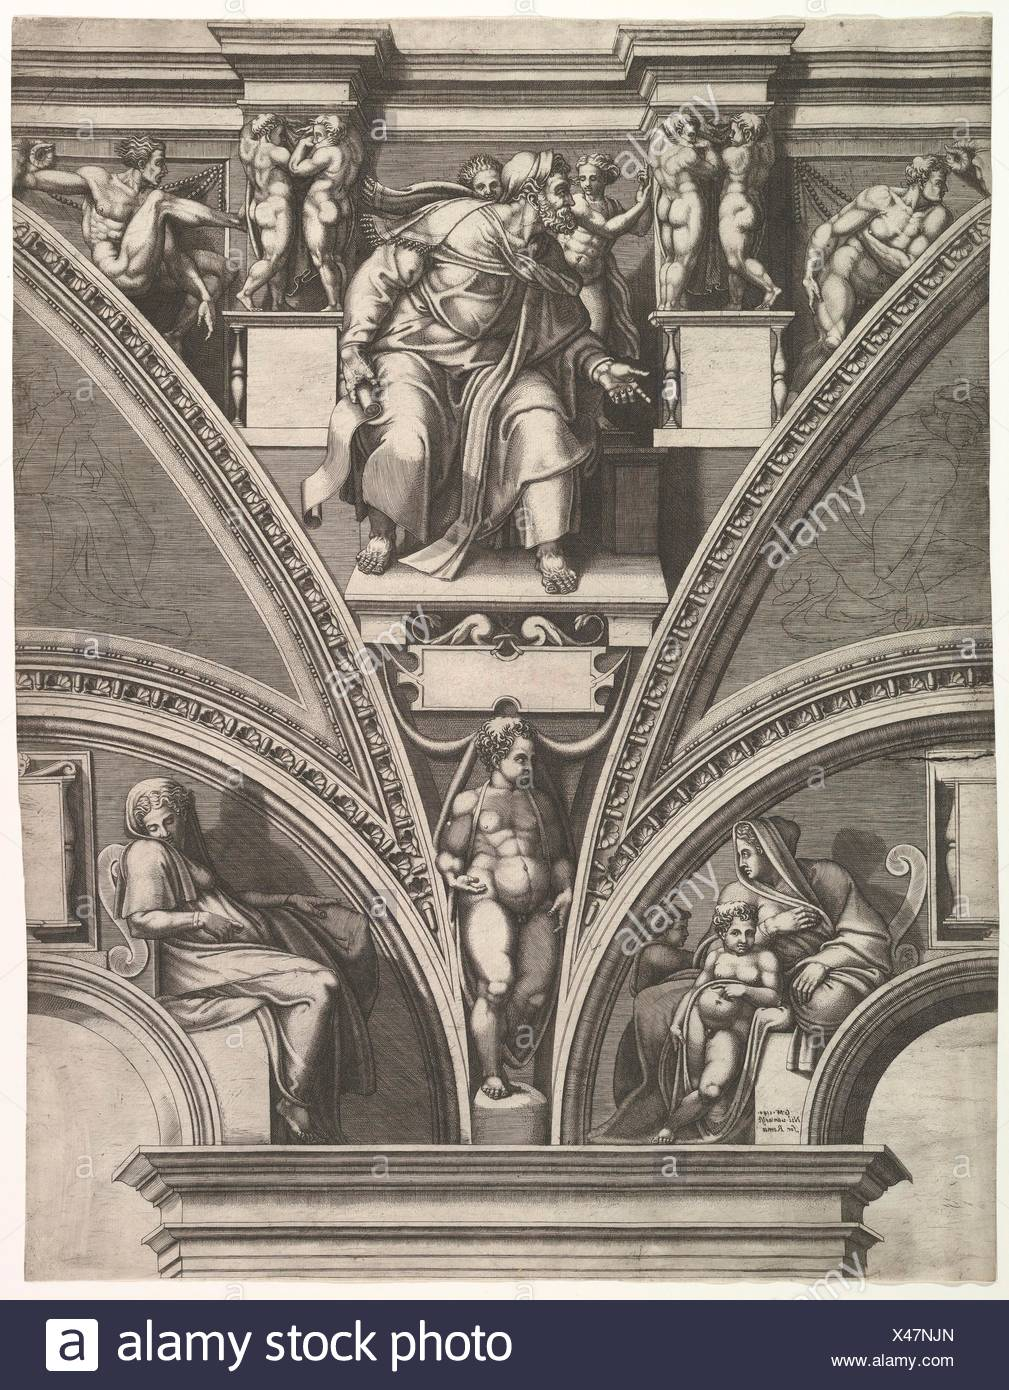 The Prophet Ezekiel; from the series of Prophets and Sibyls in the Sistine Chapel. Artist: Giorgio Ghisi (Italian, Mantua ca. 1520-1582 Mantua); - Stock Image